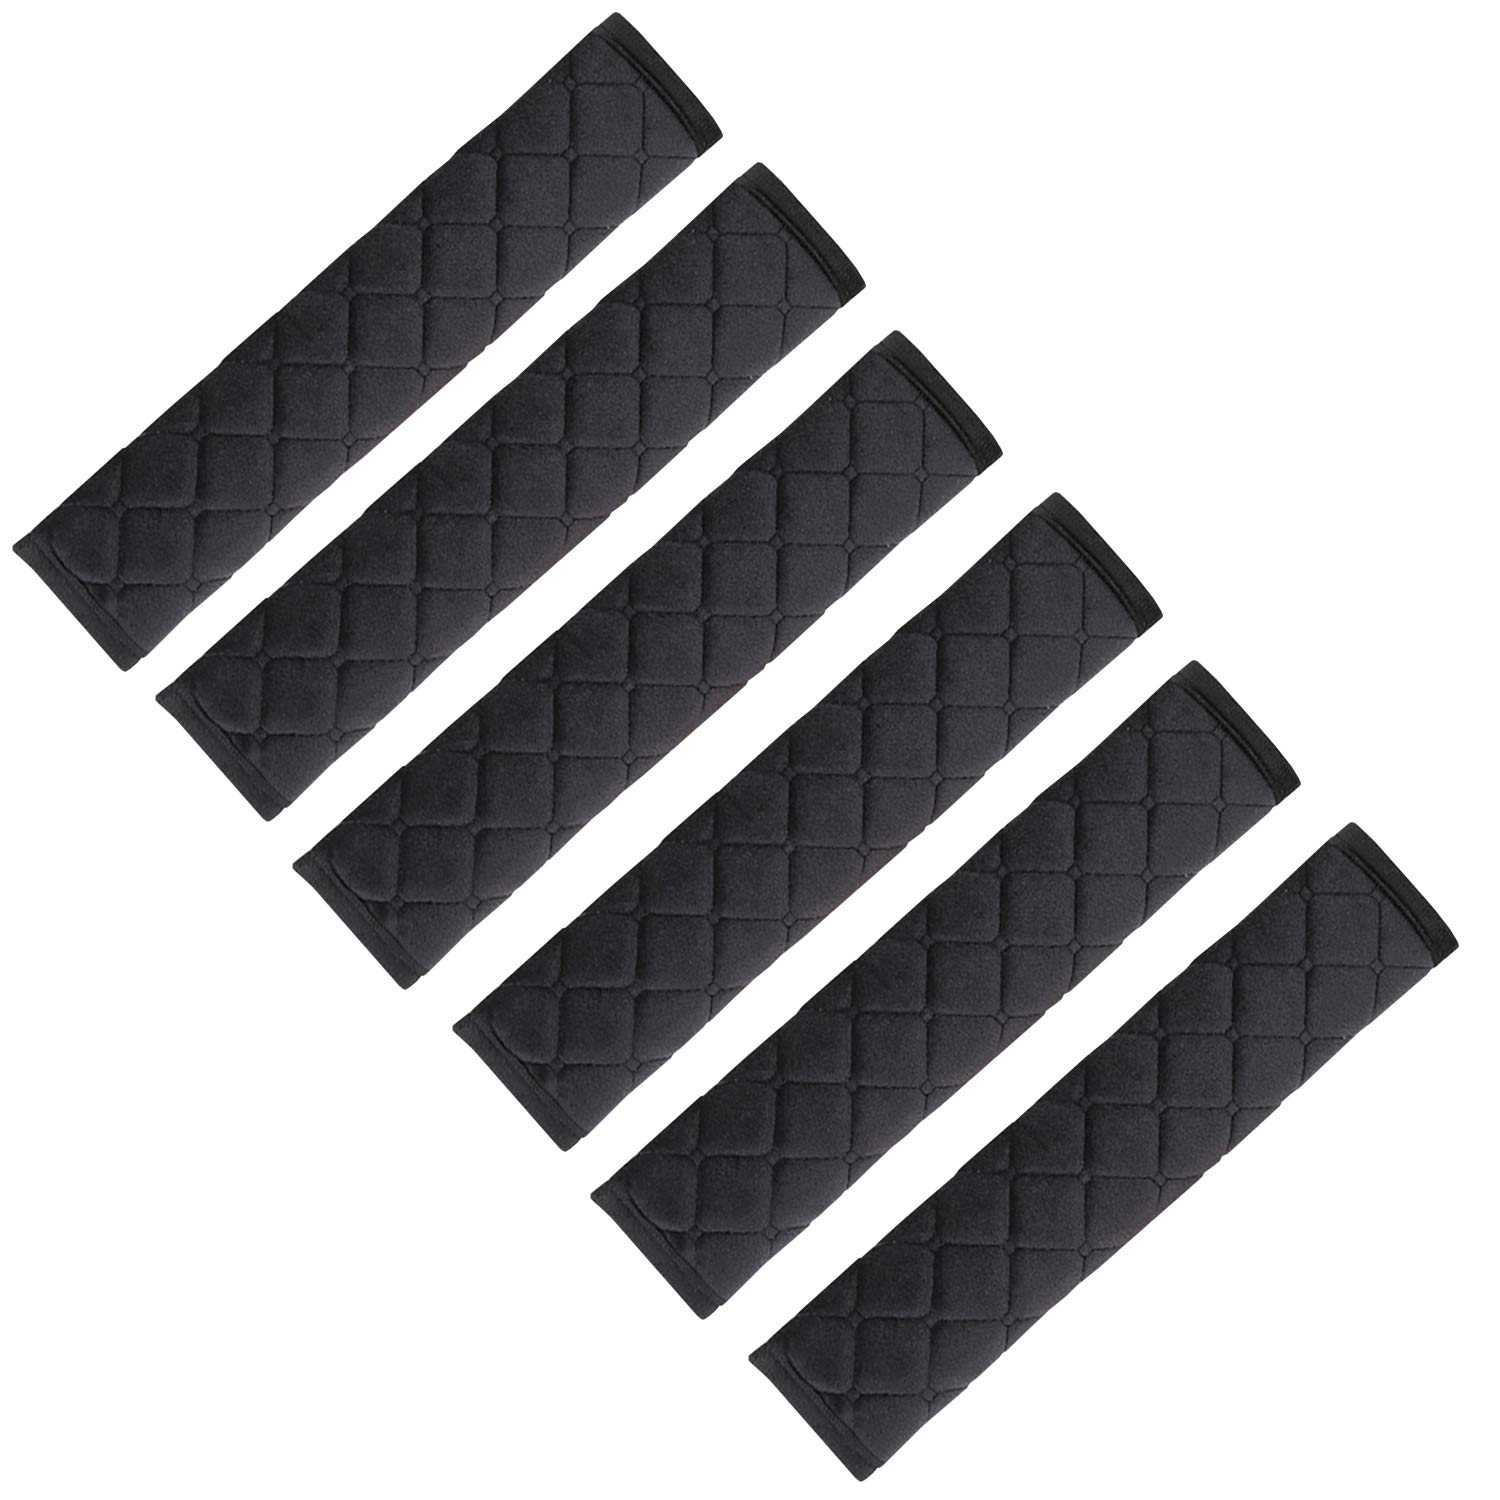 Black NEPAK 6 Pack Universal Car Seat Belt Pads Cover,Seat Belt Shoulder Strap Covers Harness Pad for Car//Bag,Protect Your Neck and Shoulder from The Seatbelt Rubbing//Lrritation